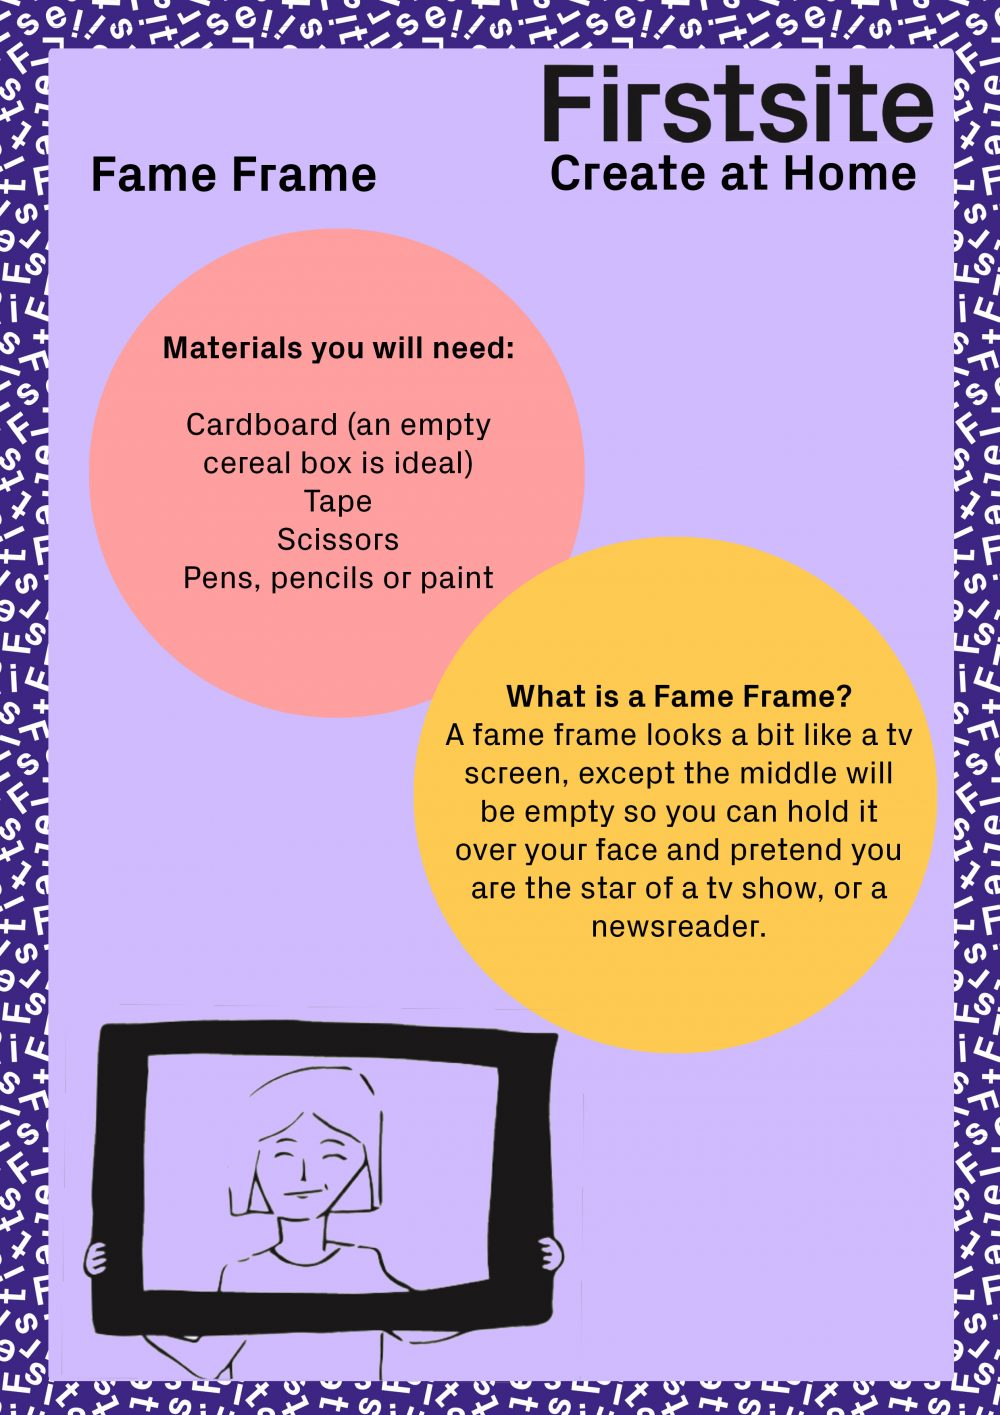 Firstsite Create at Home Fame Frame activity instructions pg 1 of 3